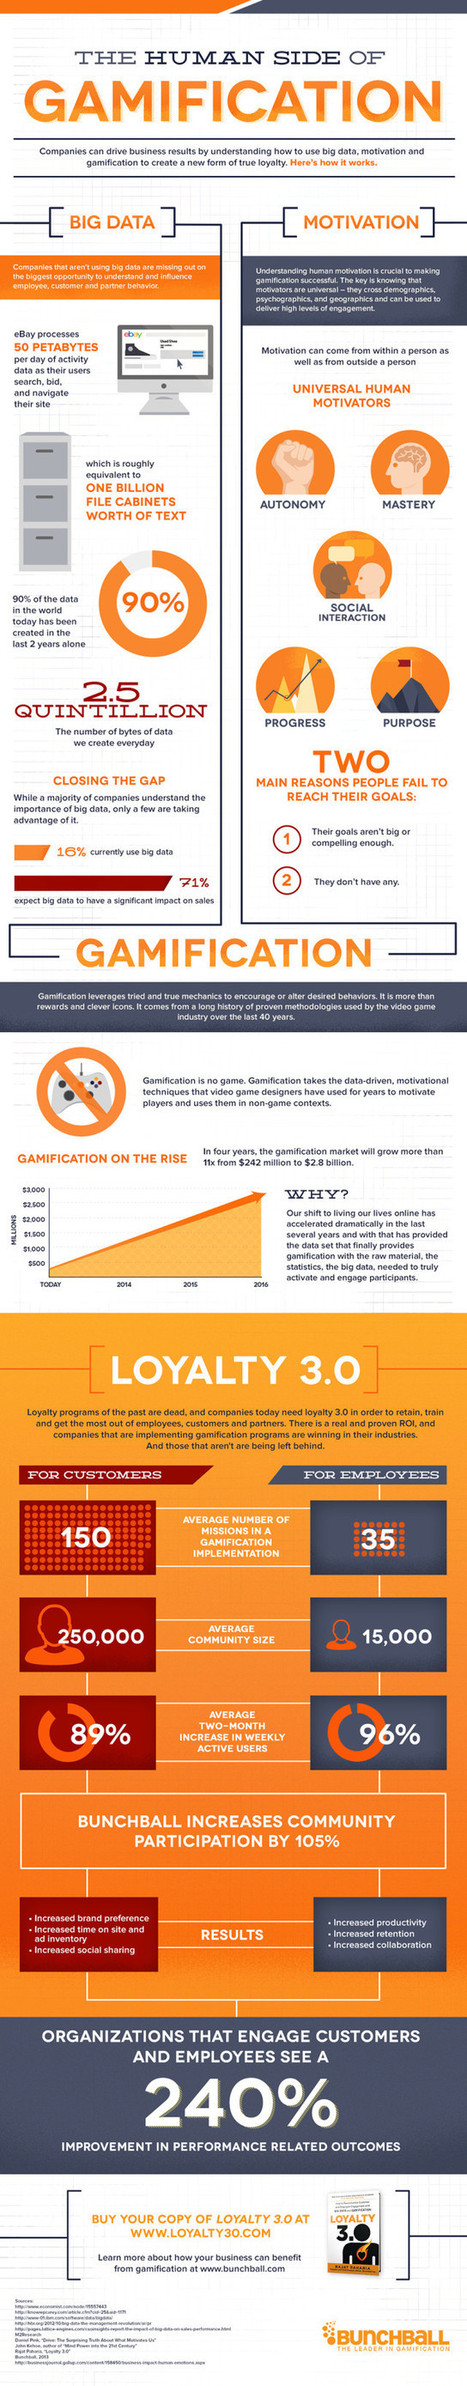 Infographic: The Human Side of Gamification - Marketing Technology Blog | Crowdfunding Strategies | Scoop.it